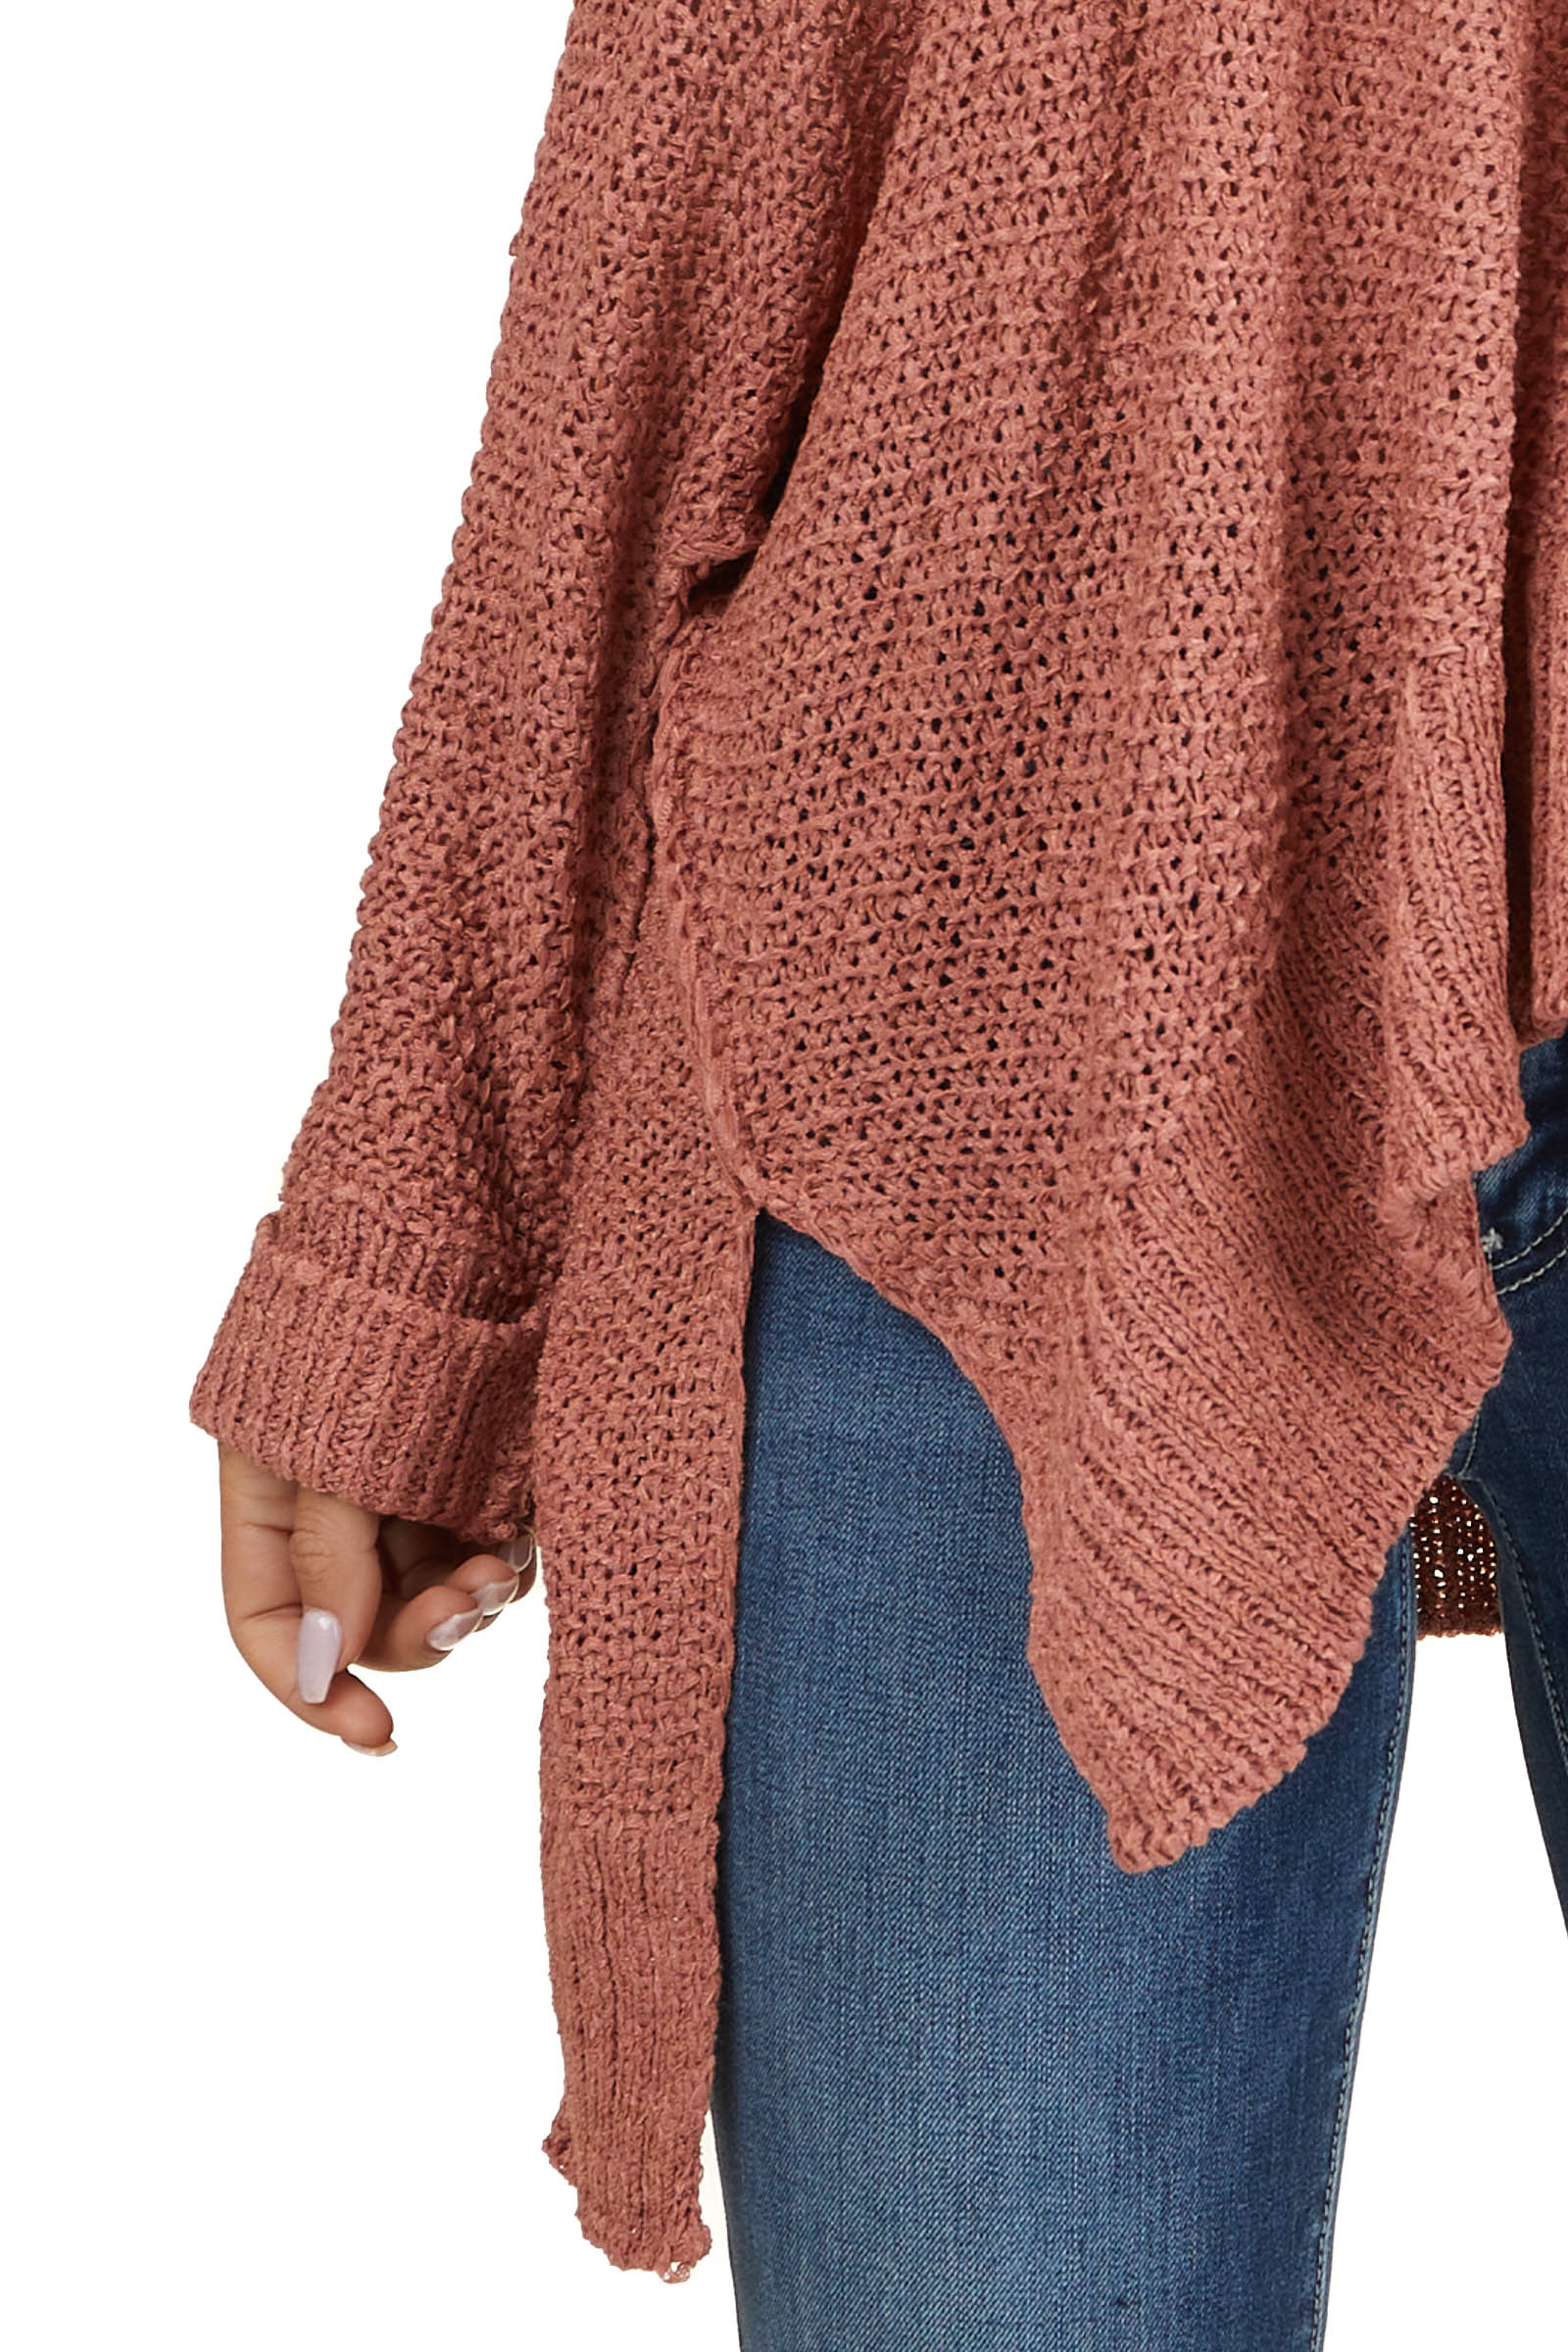 Ginger Cable Knit Sweater with Dolman Sleeves